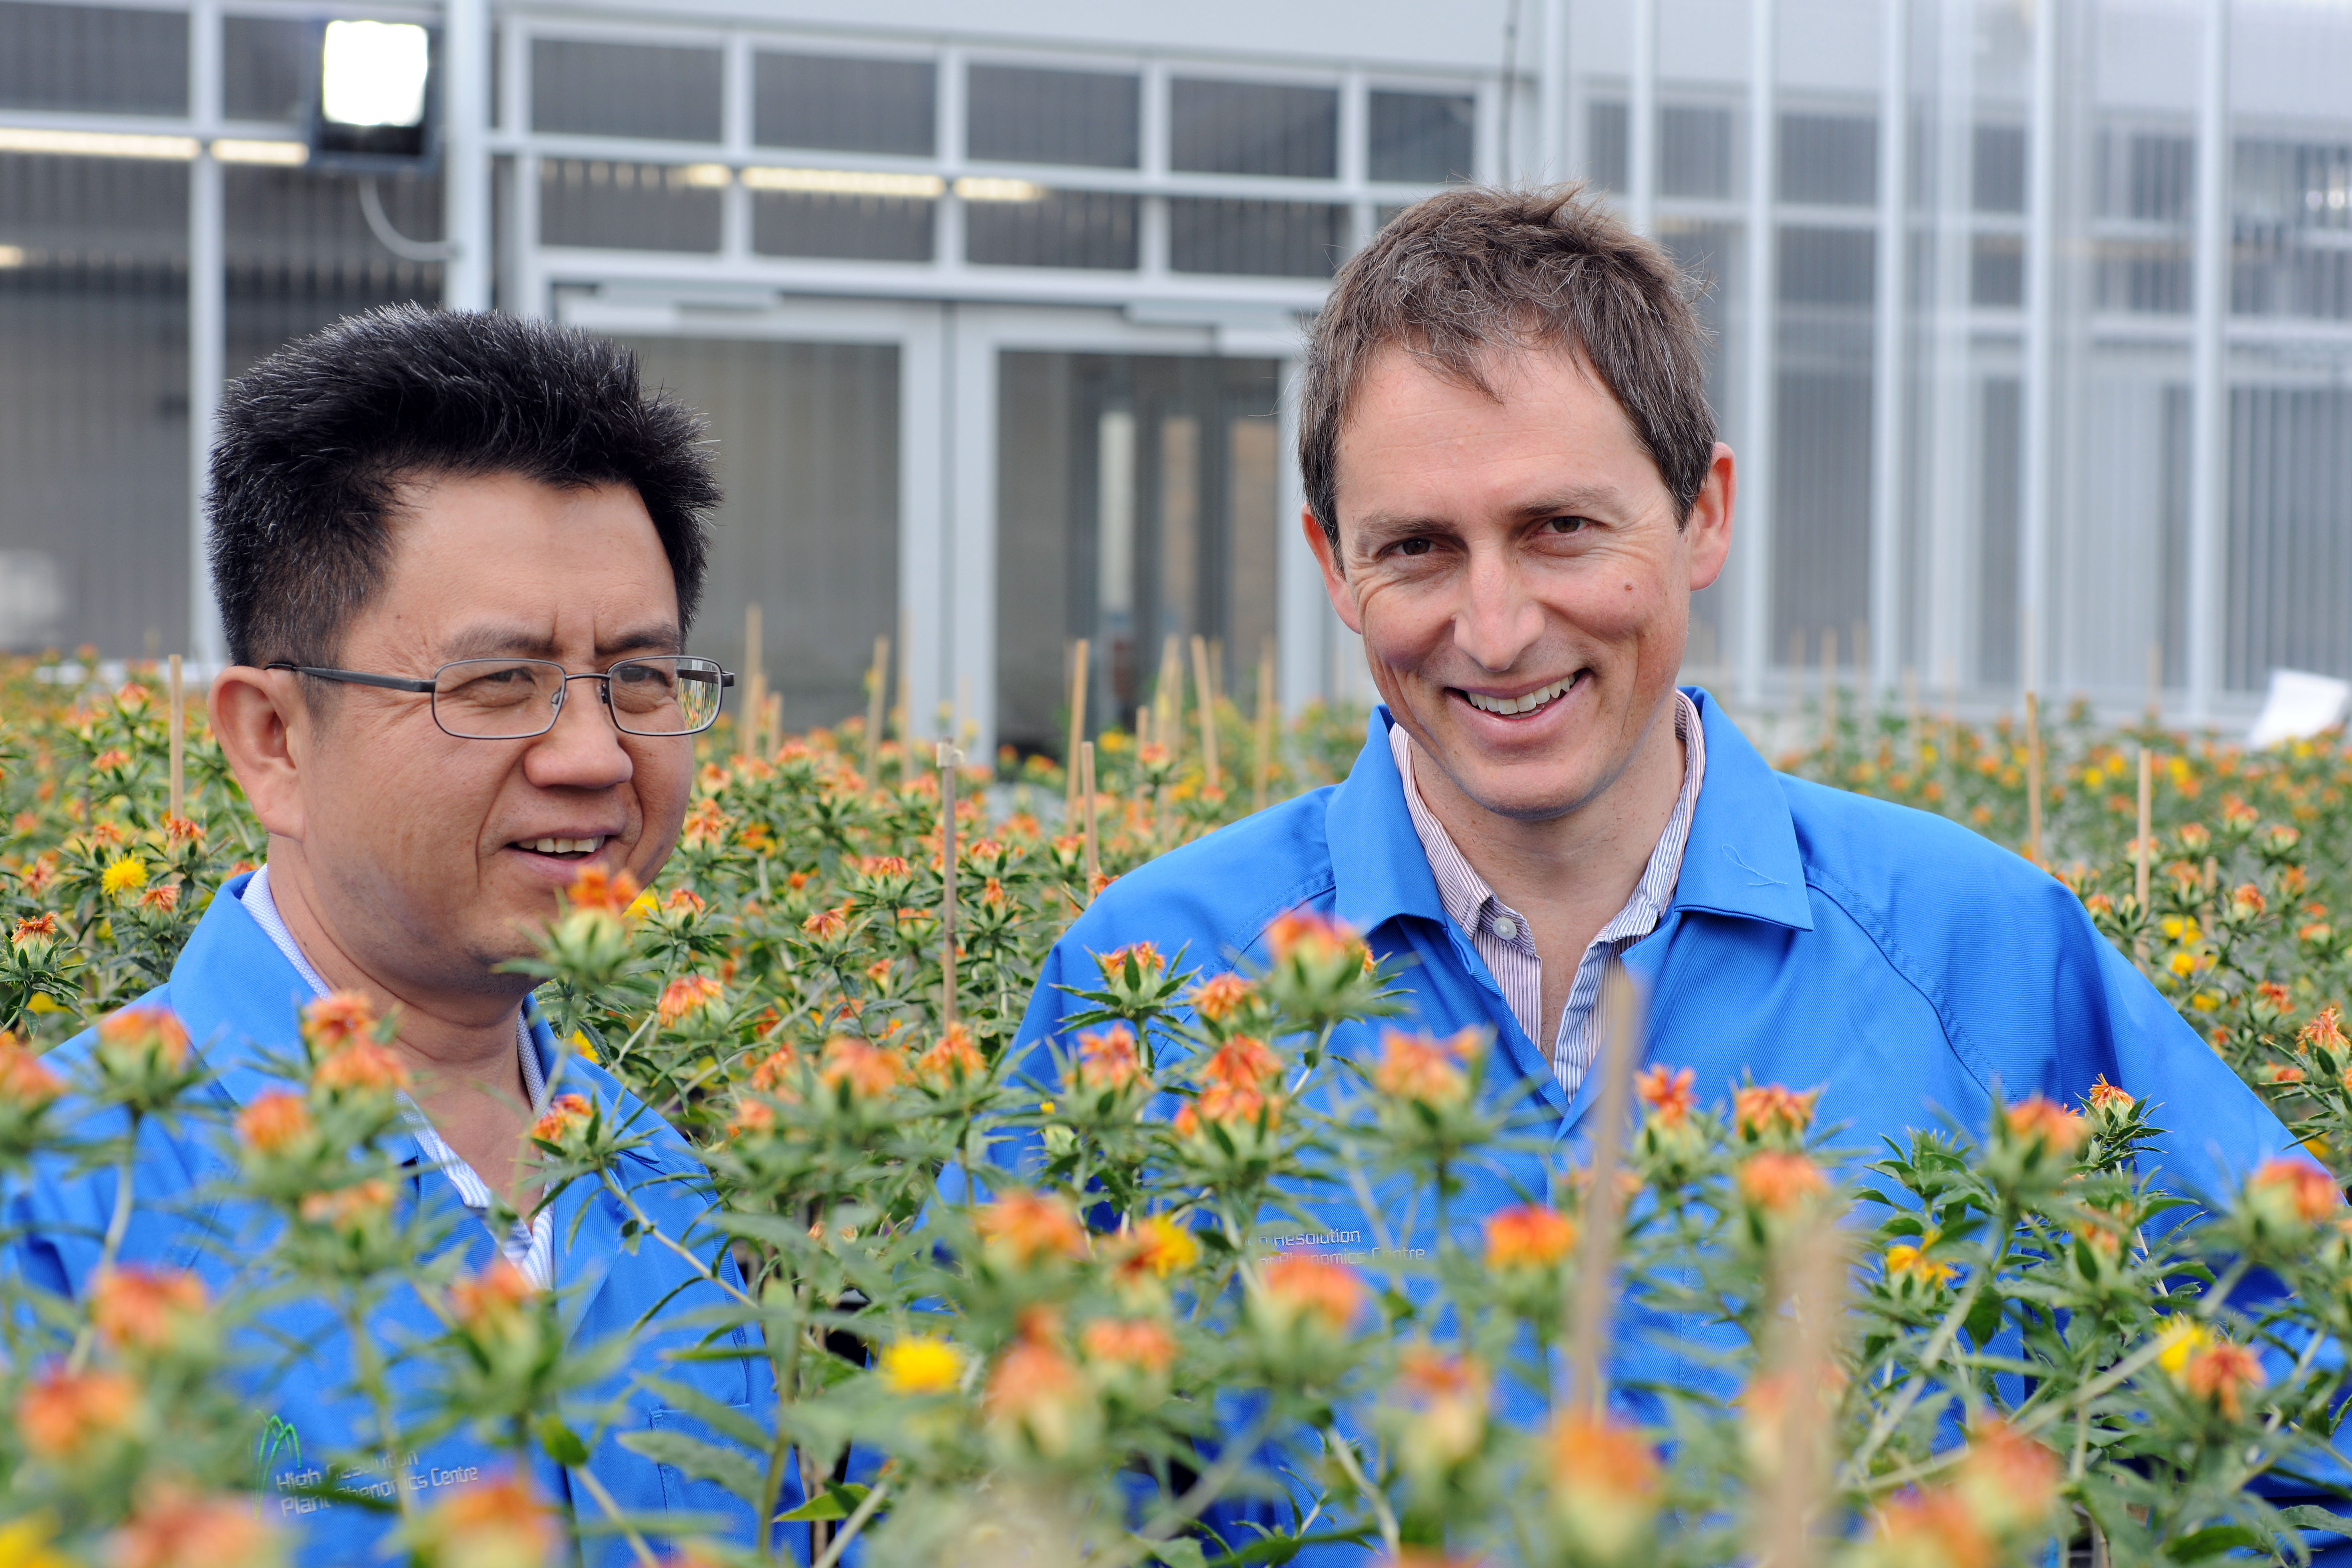 Two scientists standing amongst safflower plants.